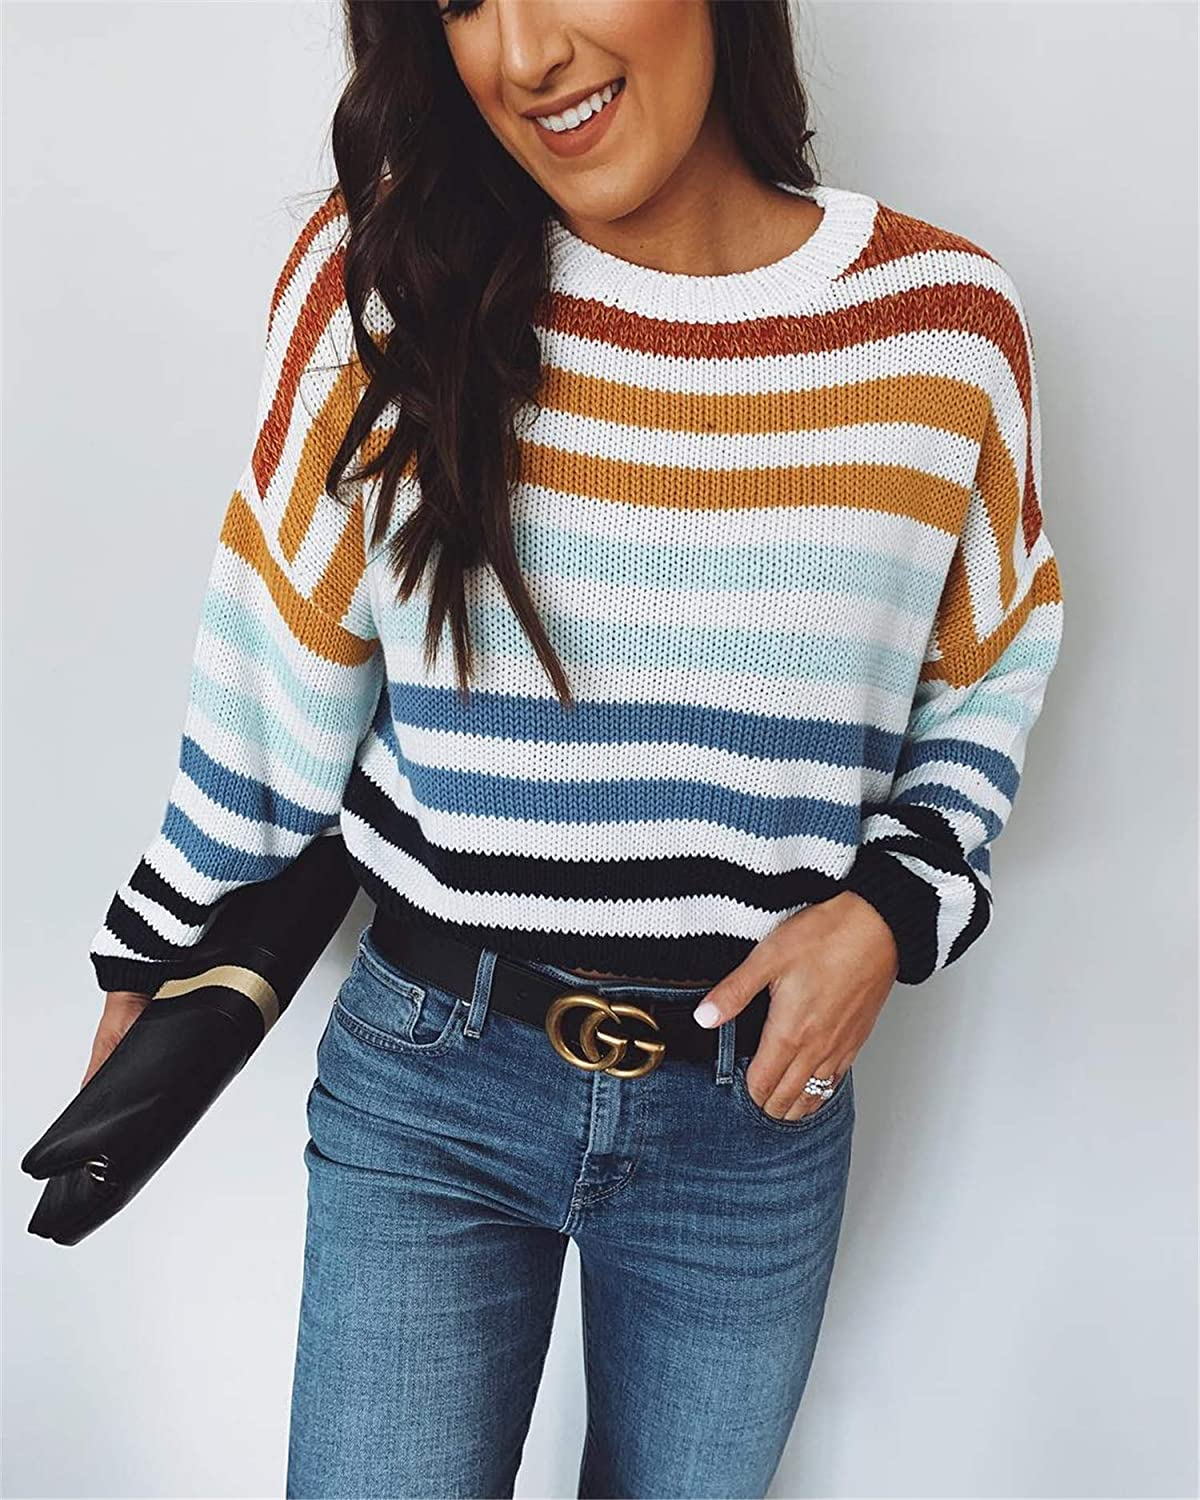 YHBAO Women Striped Knitted Sweater Long Sleeve Crew Neck Color Block Pullover Tops